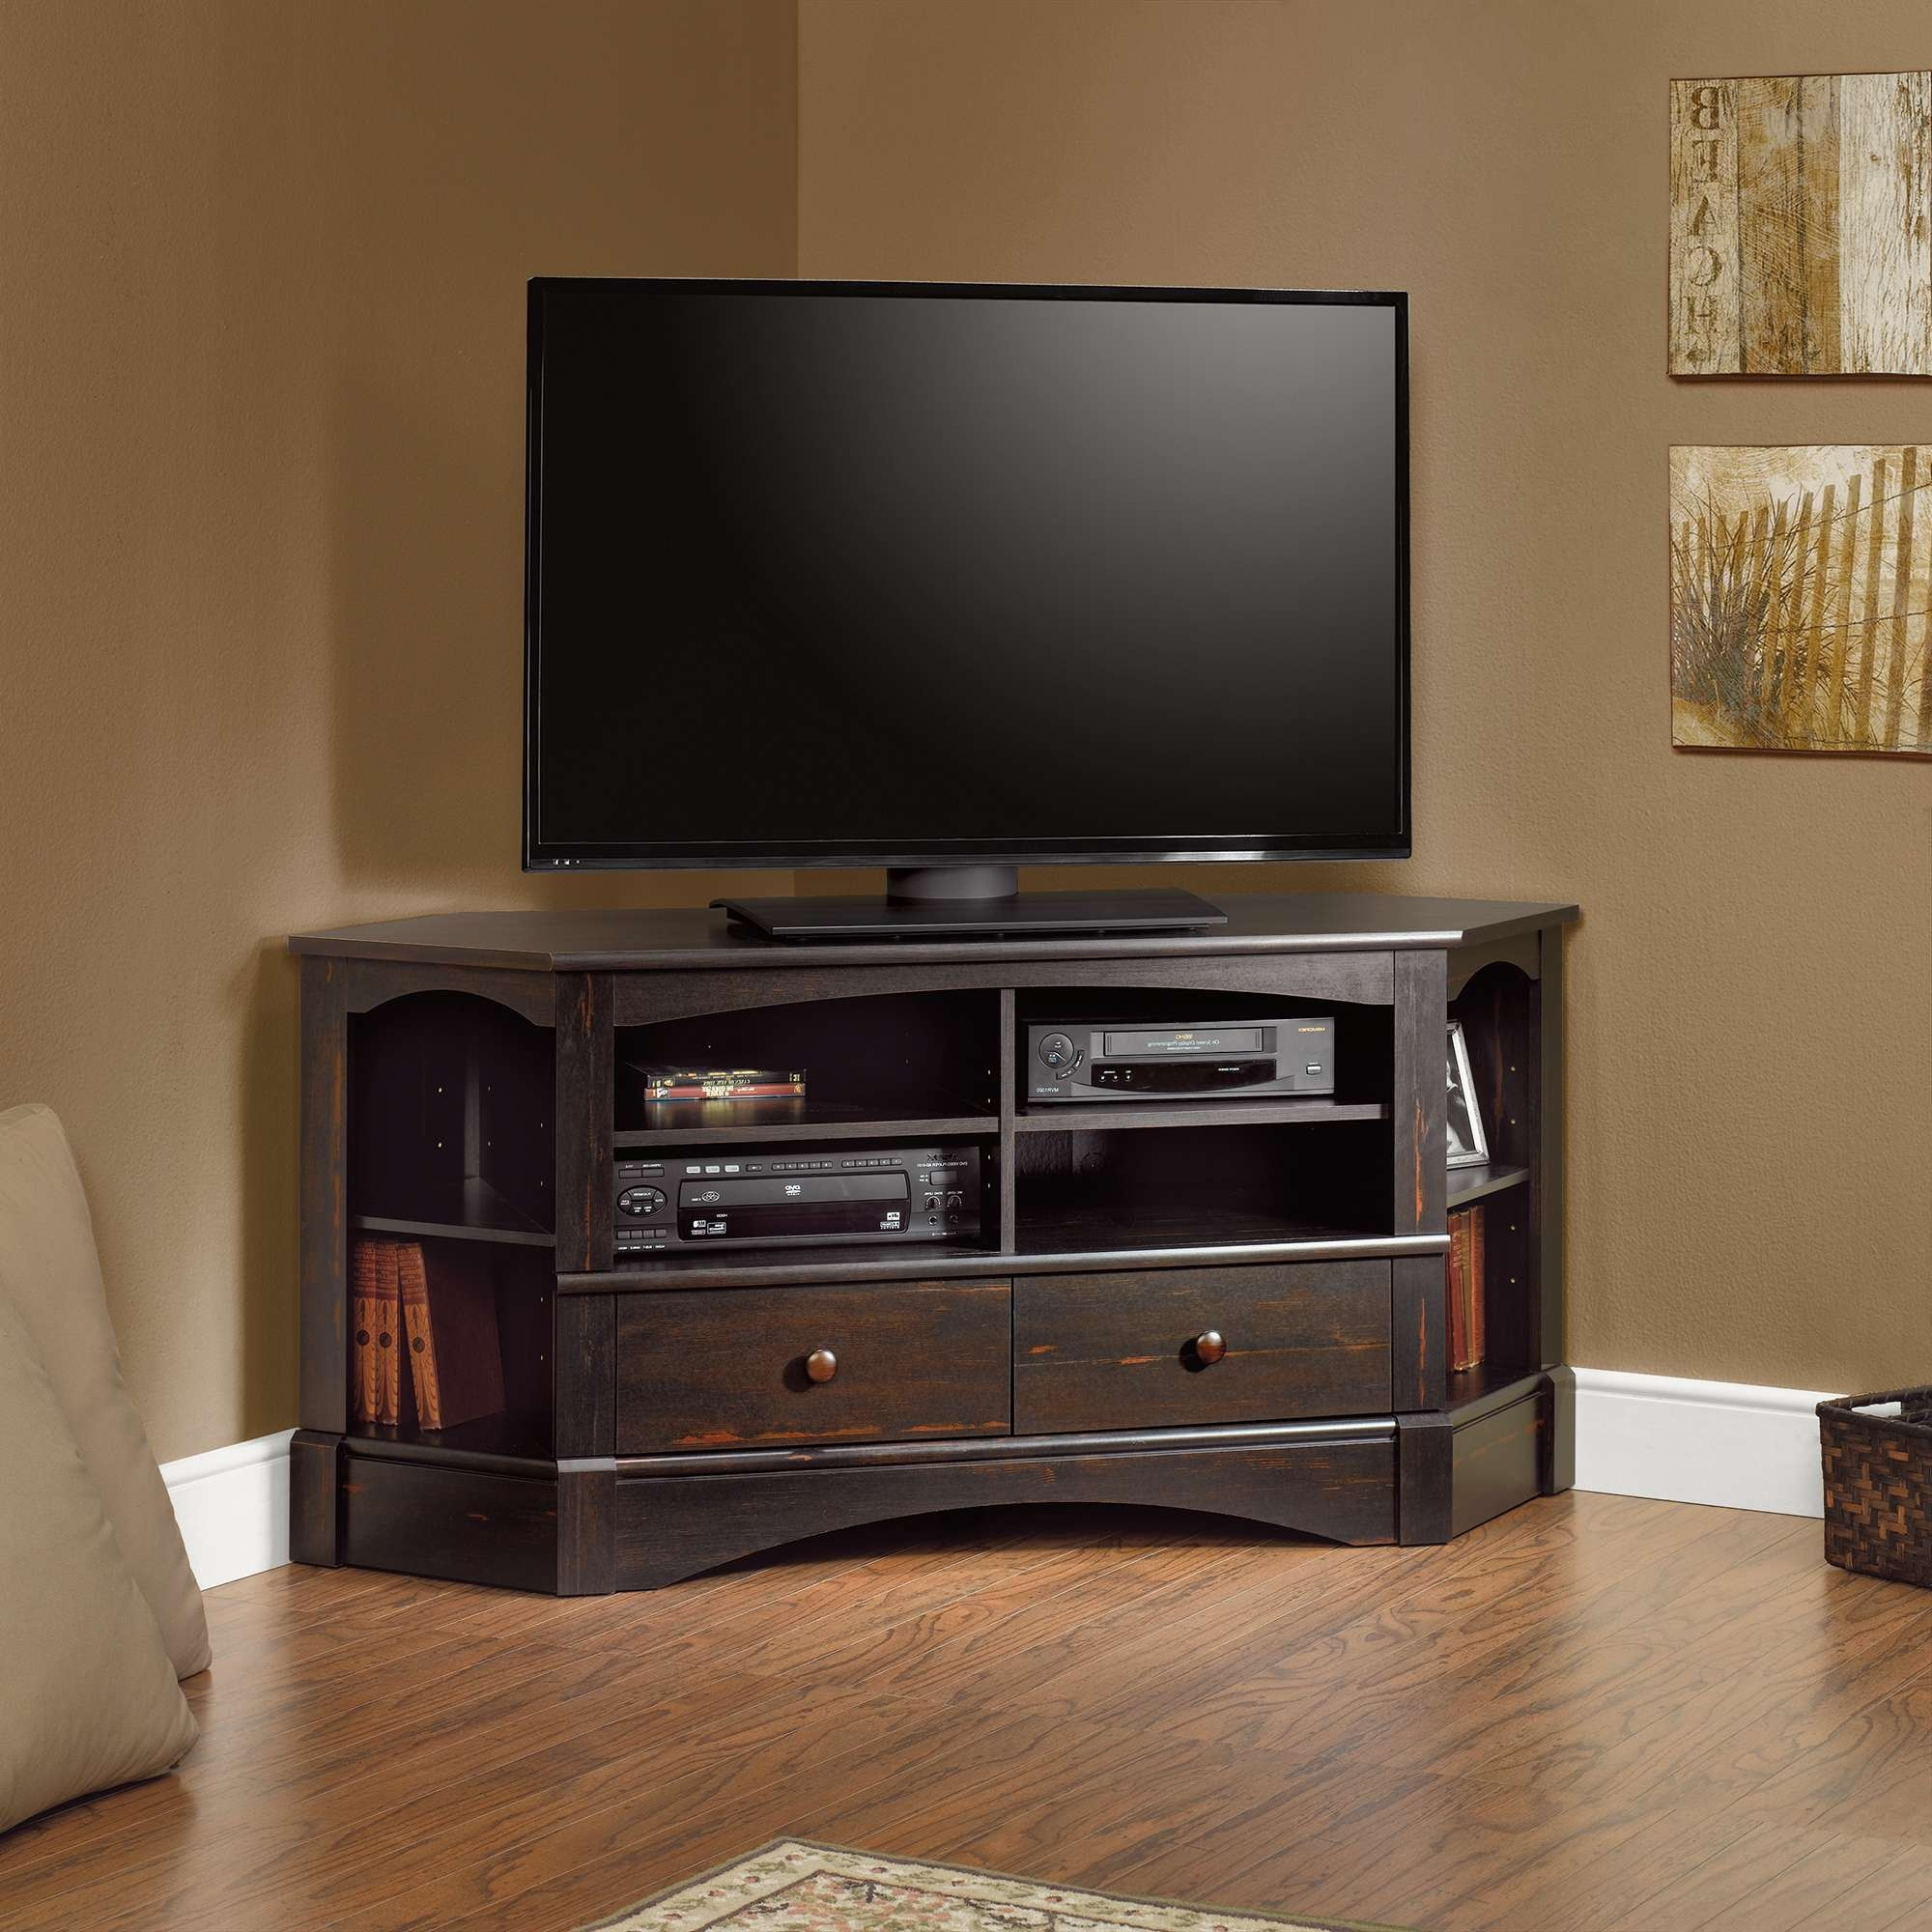 Harbor View | Corner Entertainment Credenza | 402902 | Sauder With Black Wood Corner Tv Stands (View 11 of 15)